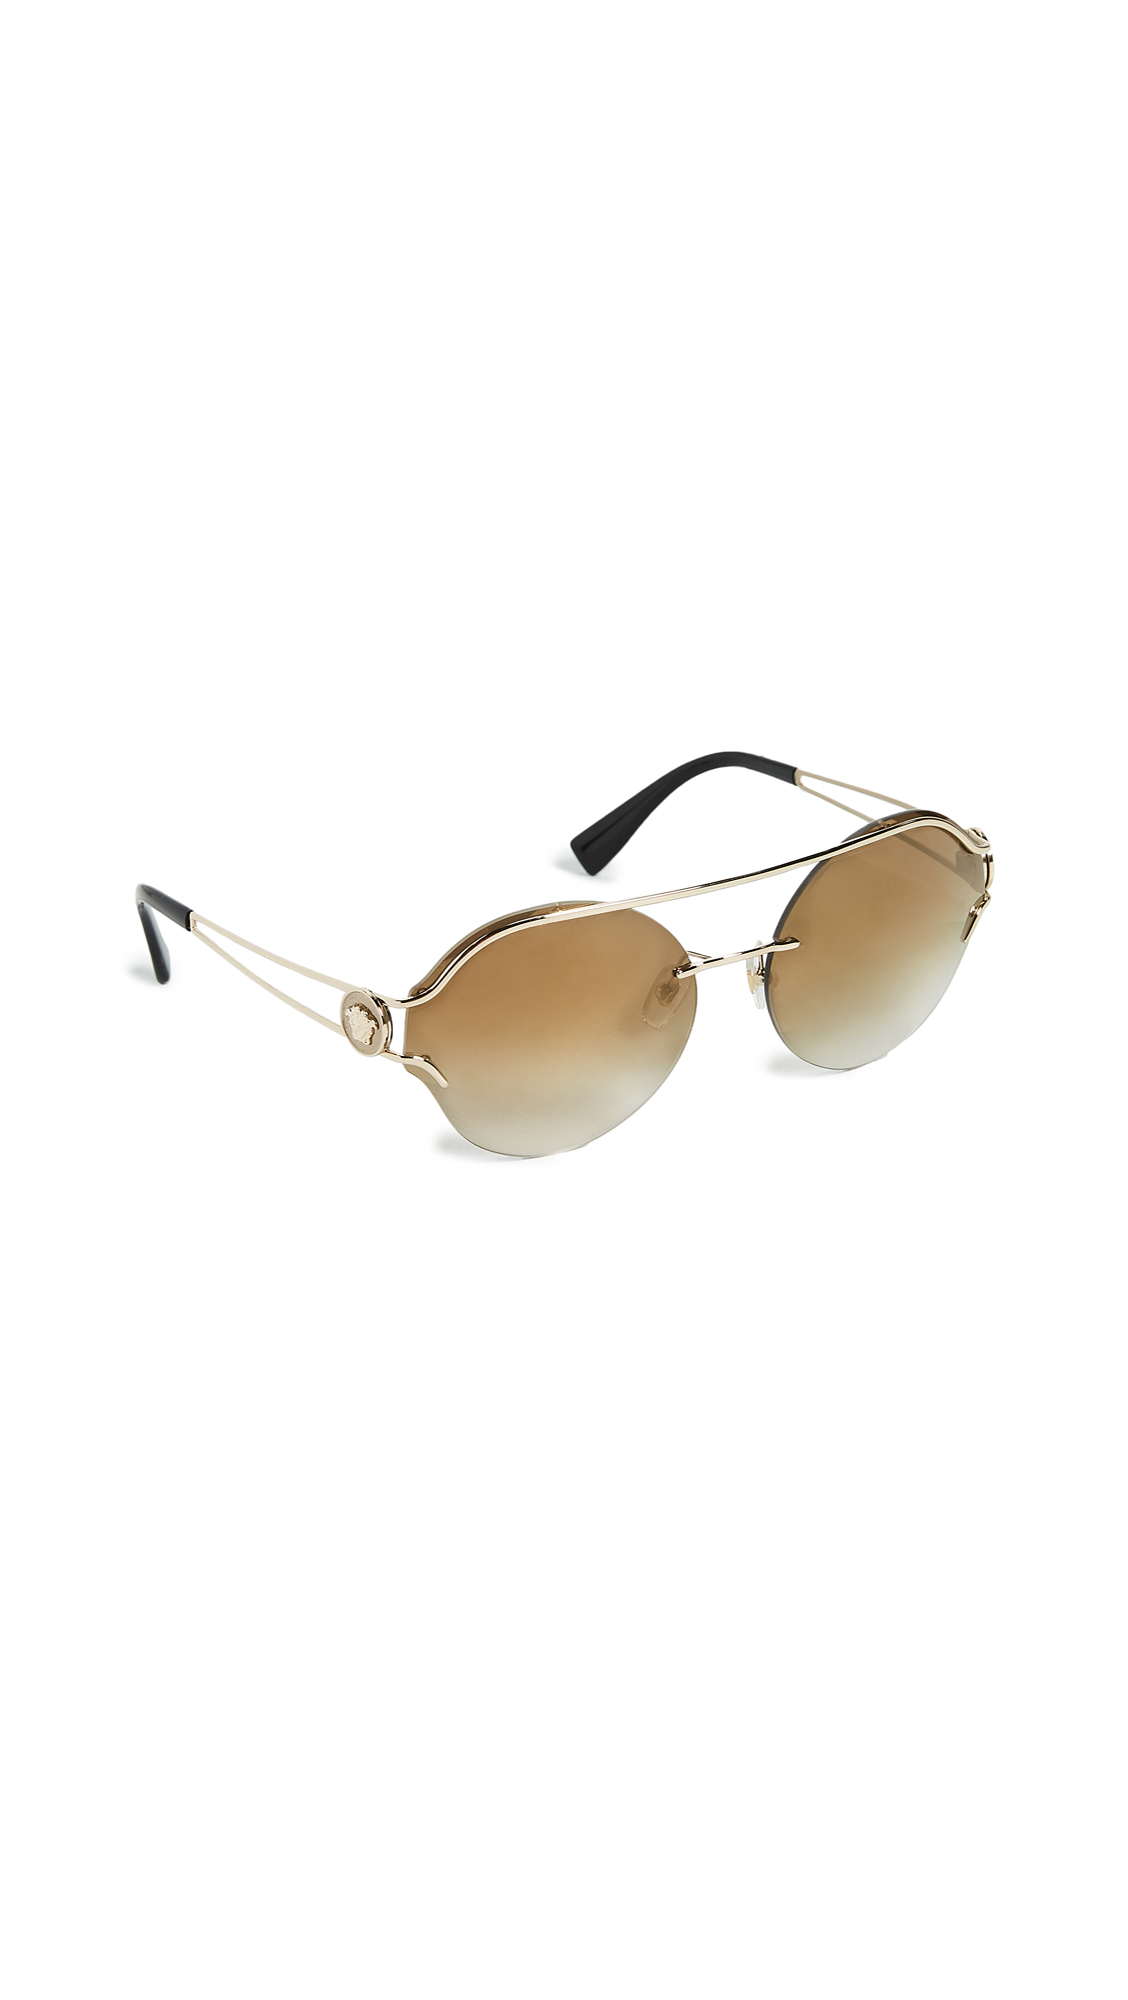 Versace Manifesto Round Sunglasses - Pale Gold/Brown Gold